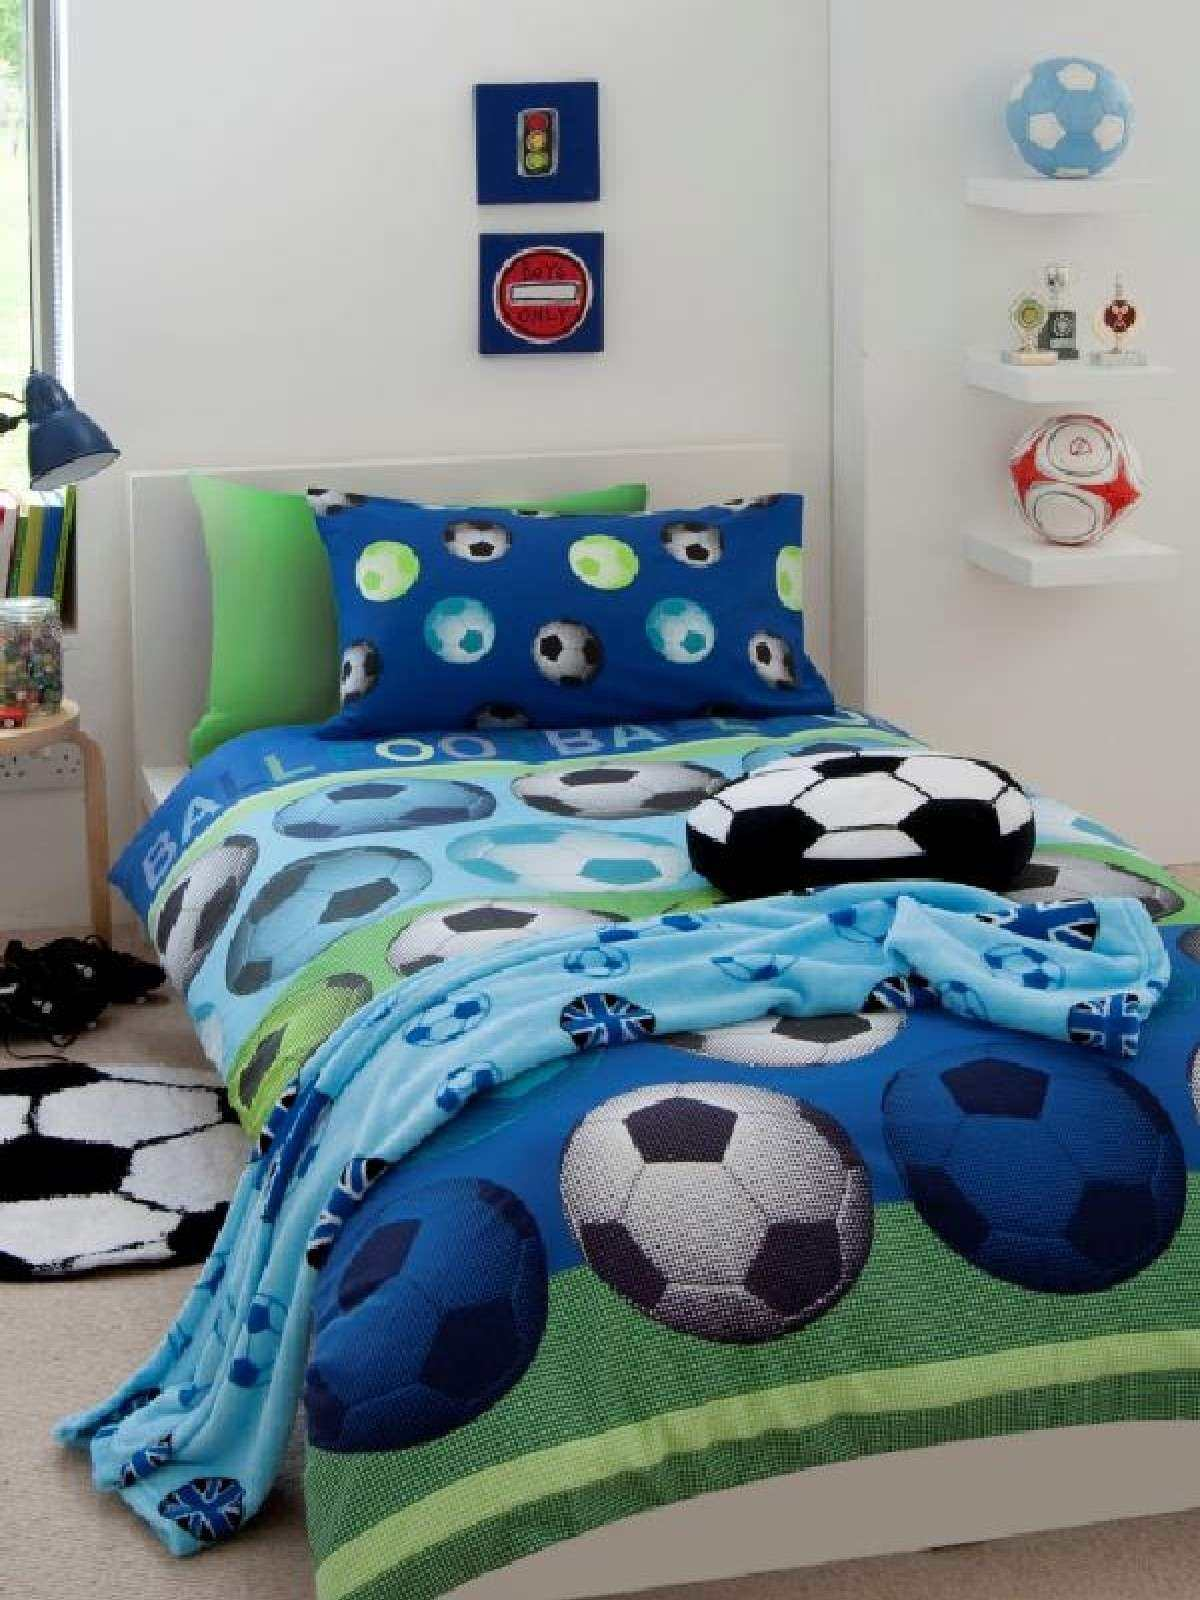 housse de couette basketball. Black Bedroom Furniture Sets. Home Design Ideas